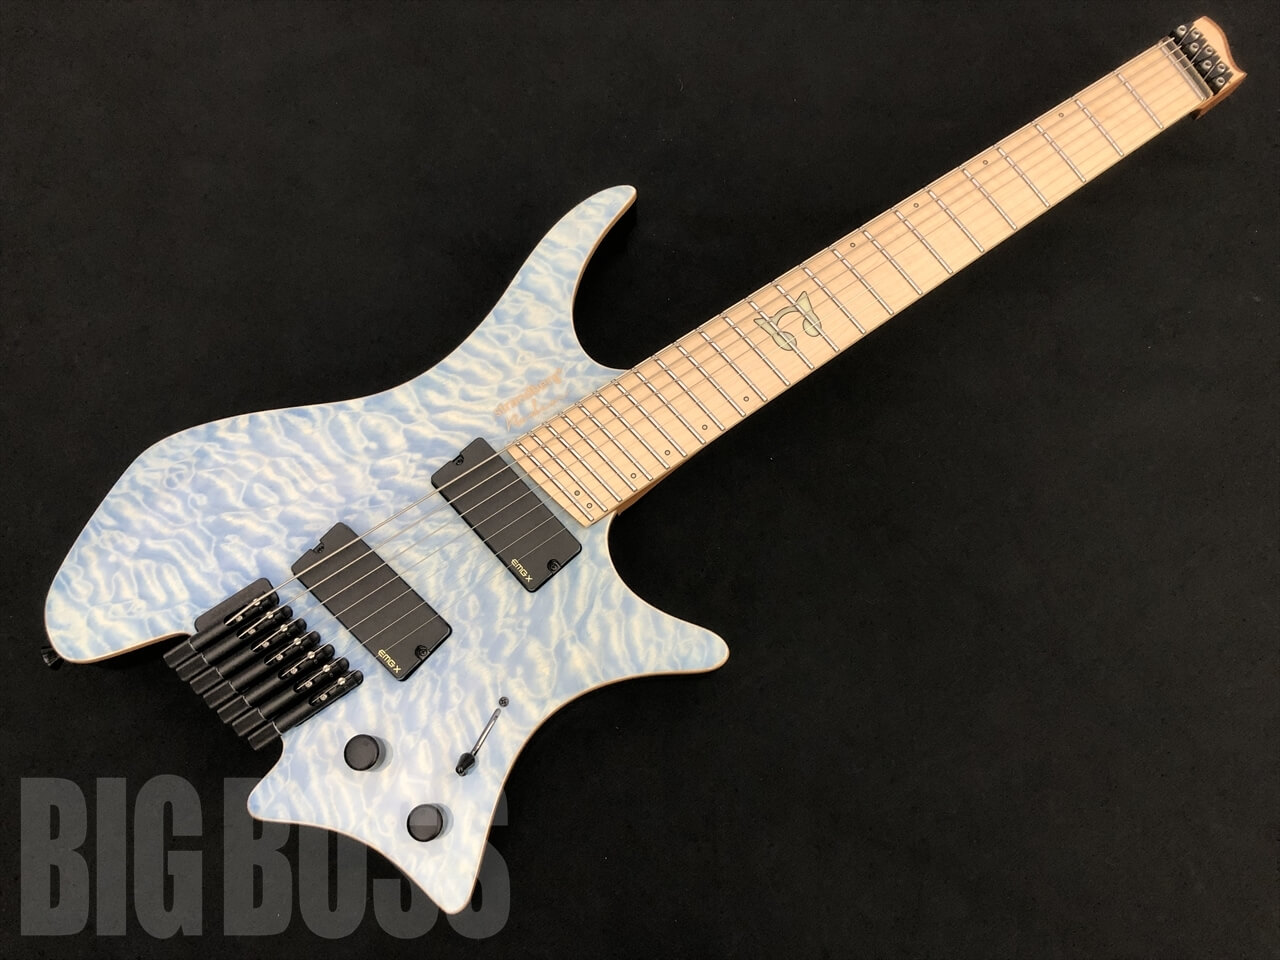 【BanG Dream! RAISE A SUILEN×strandberg コラボレーション】strandberg(ストランドバーグ) Boden J7 RAS LOCK -Caribbean Light Blue- / RAISE A SUILEN LOCK MODEL【ご予約受付中】